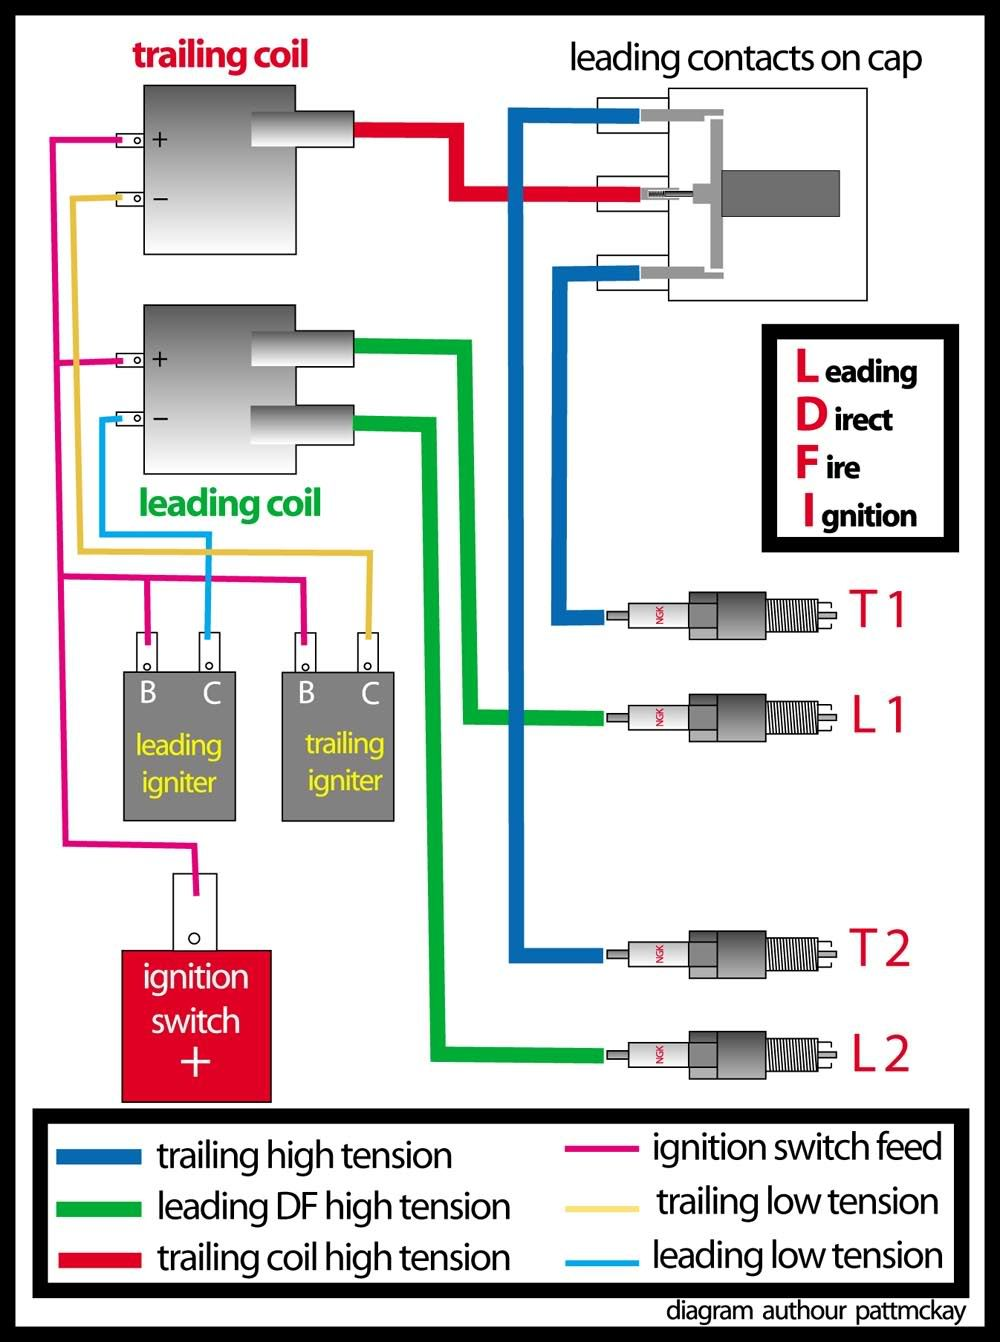 f51a9f8accfbb2accd16cb3edbec5003 here is a simple wiring diagram for a single leading direct fire n-tune wiring diagram at reclaimingppi.co